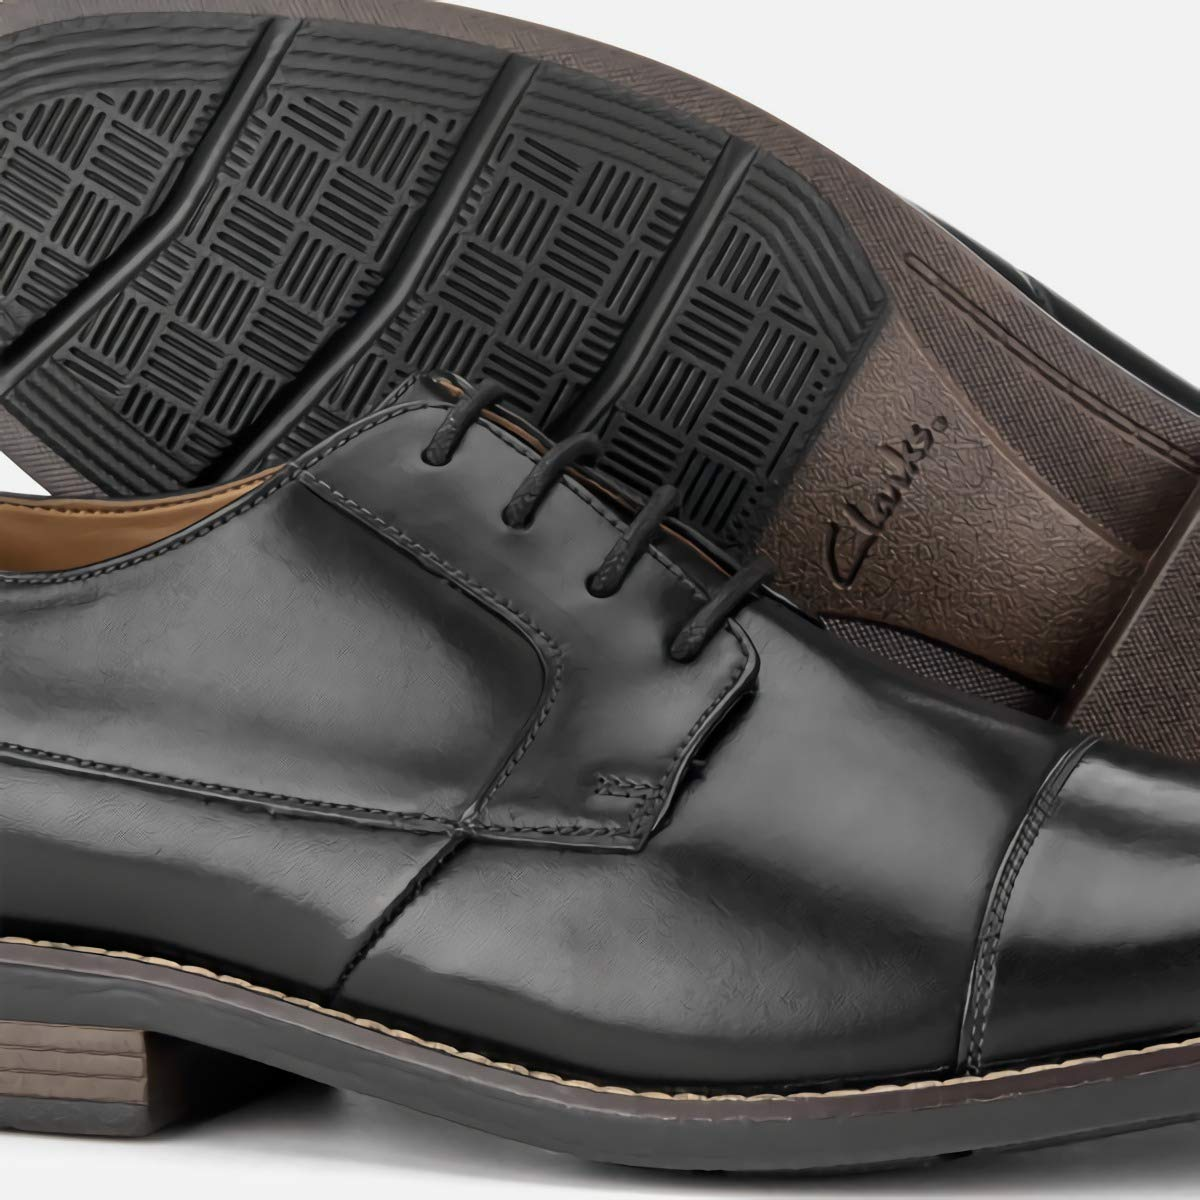 32490e0ce0aa Clarks Becken Cap Mens Wide Fit Formal Lace Up Shoes  Amazon.co.uk  Shoes    Bags